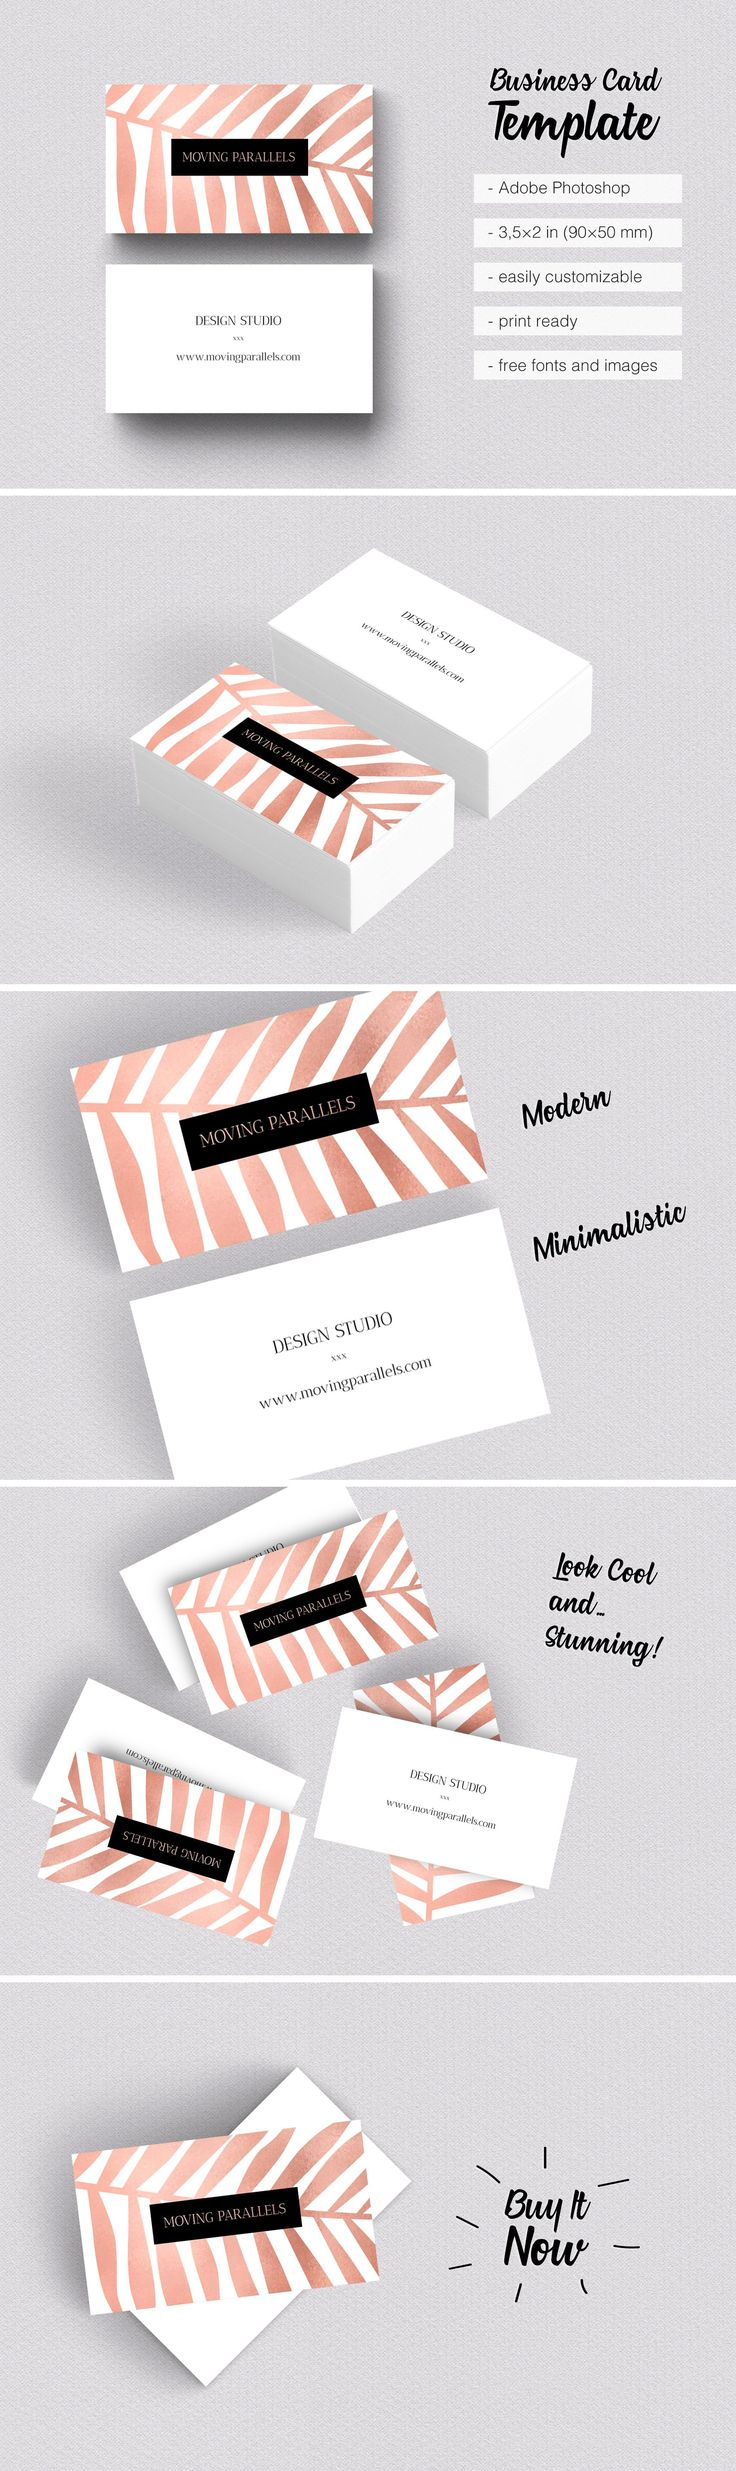 Best 25 promotional printing ideas on pinterest business card 8 rose gold business card etsy is classy sophisticated and elegant visiting card templates magicingreecefo Gallery